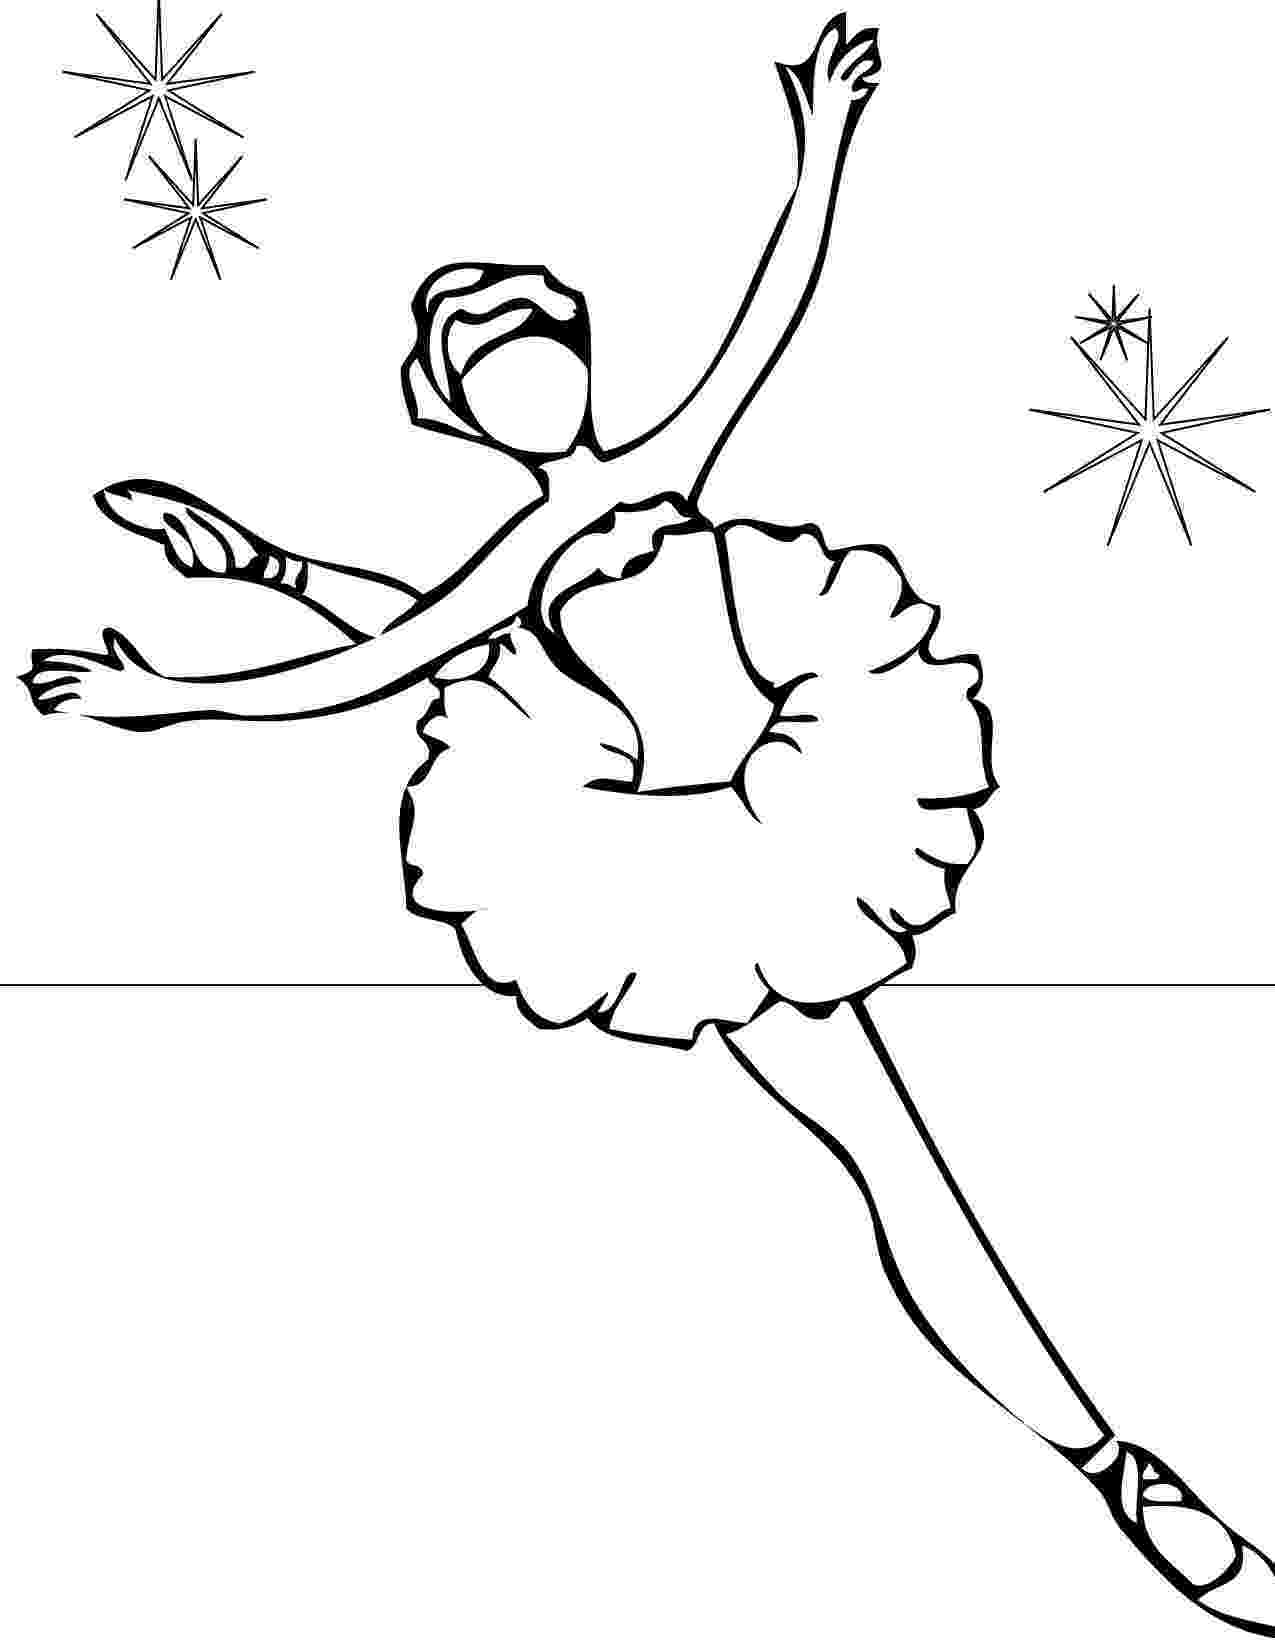 printable coloring pages ballerina printable ballet coloring pages for kids cool2bkids pages coloring printable ballerina